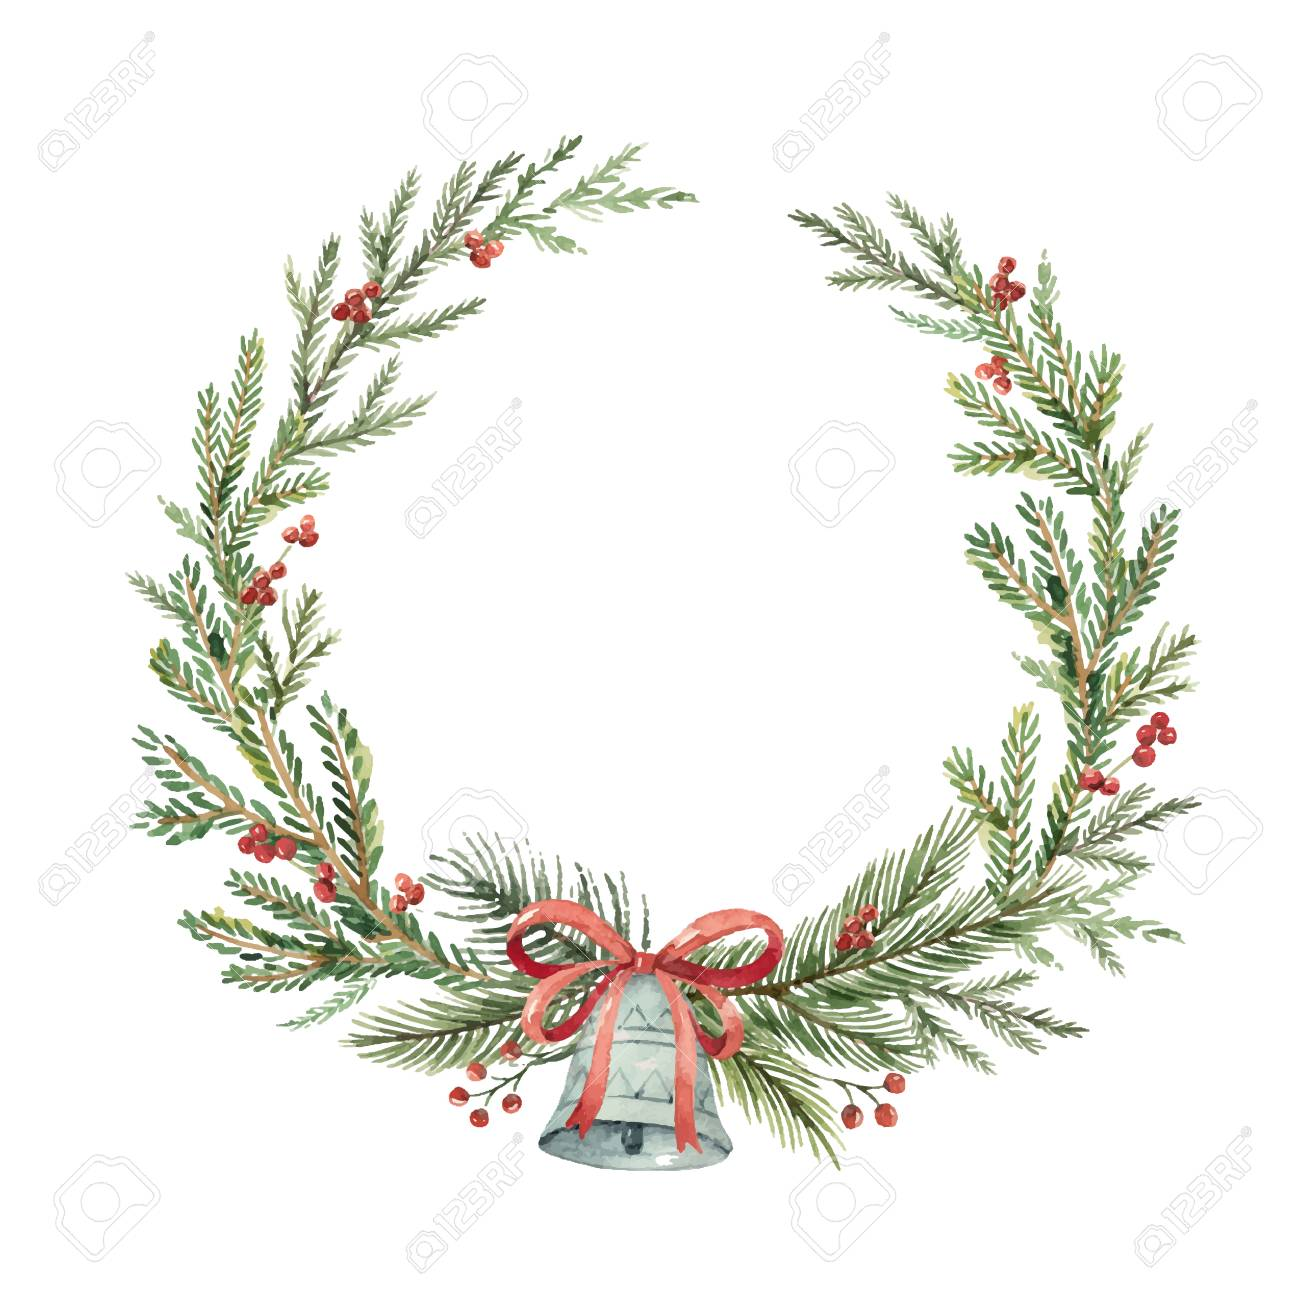 Christmas Wreath Clipart.Watercolor Christmas Wreath With Bell Illustration